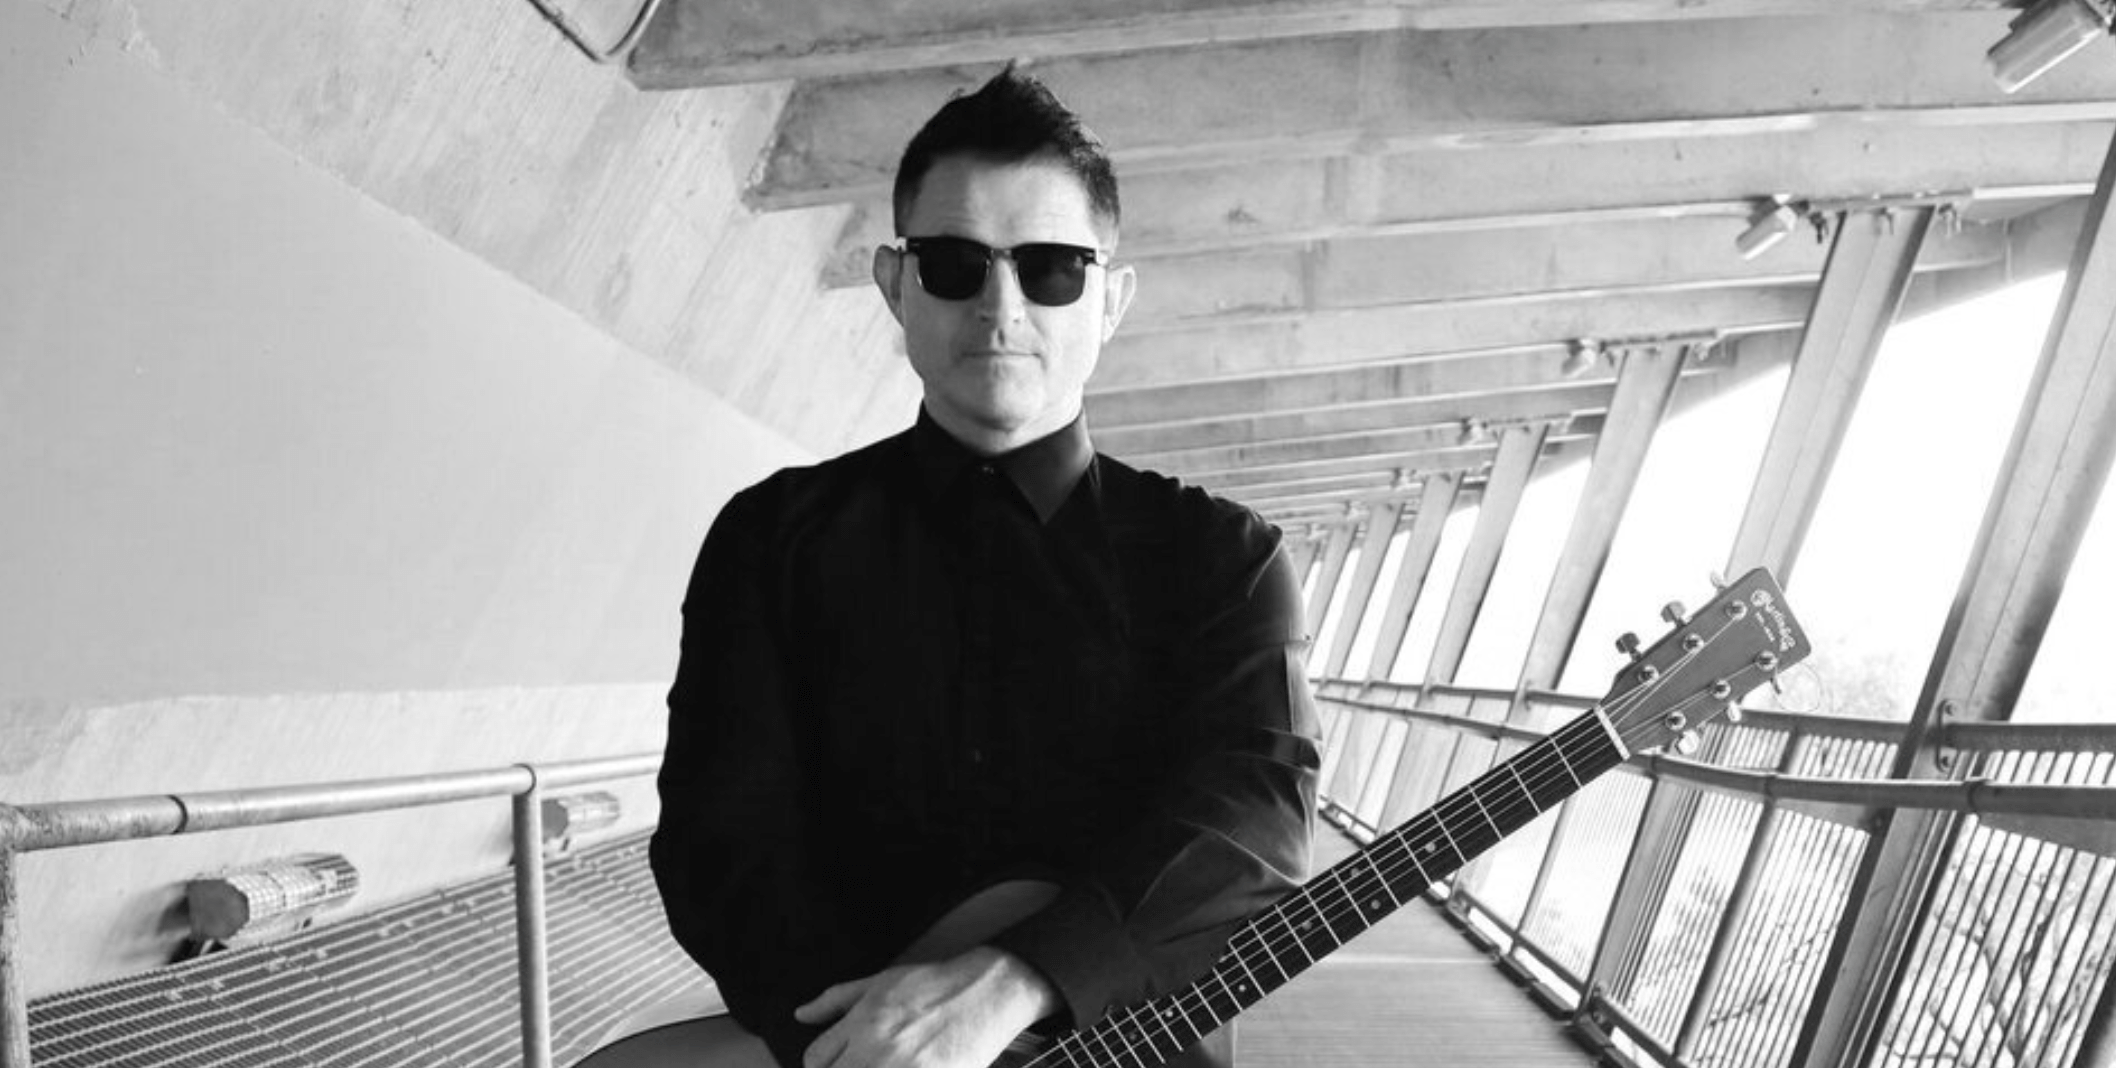 The extraordinary voice of former INXS frontman Ciaran Gribbin returns with 'Let's Change The World'